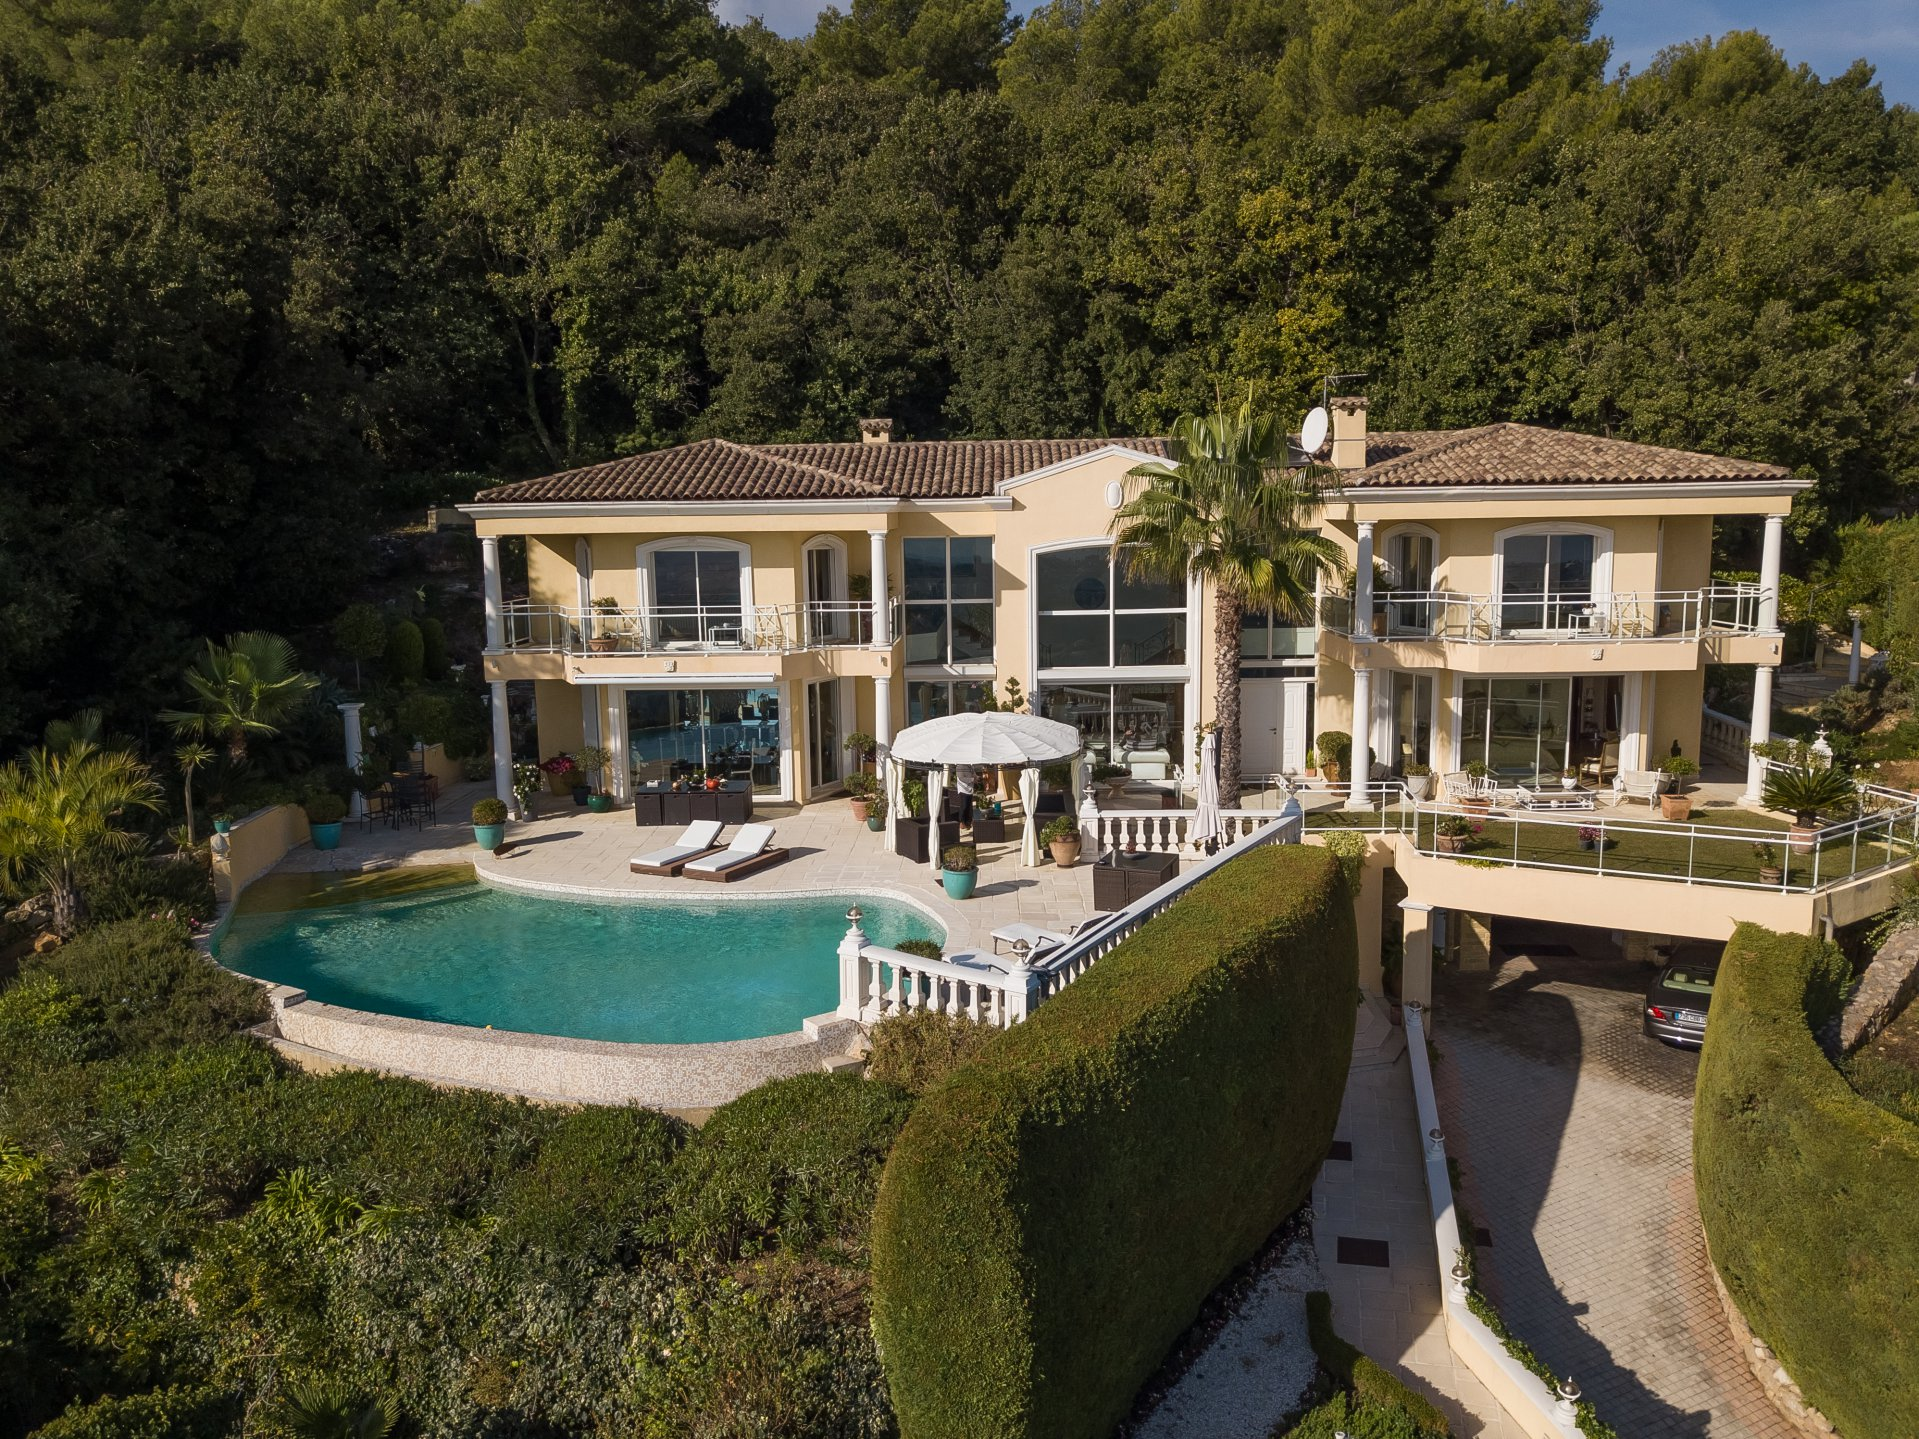 SUPER CANNES AREA VILLA FOR SALE